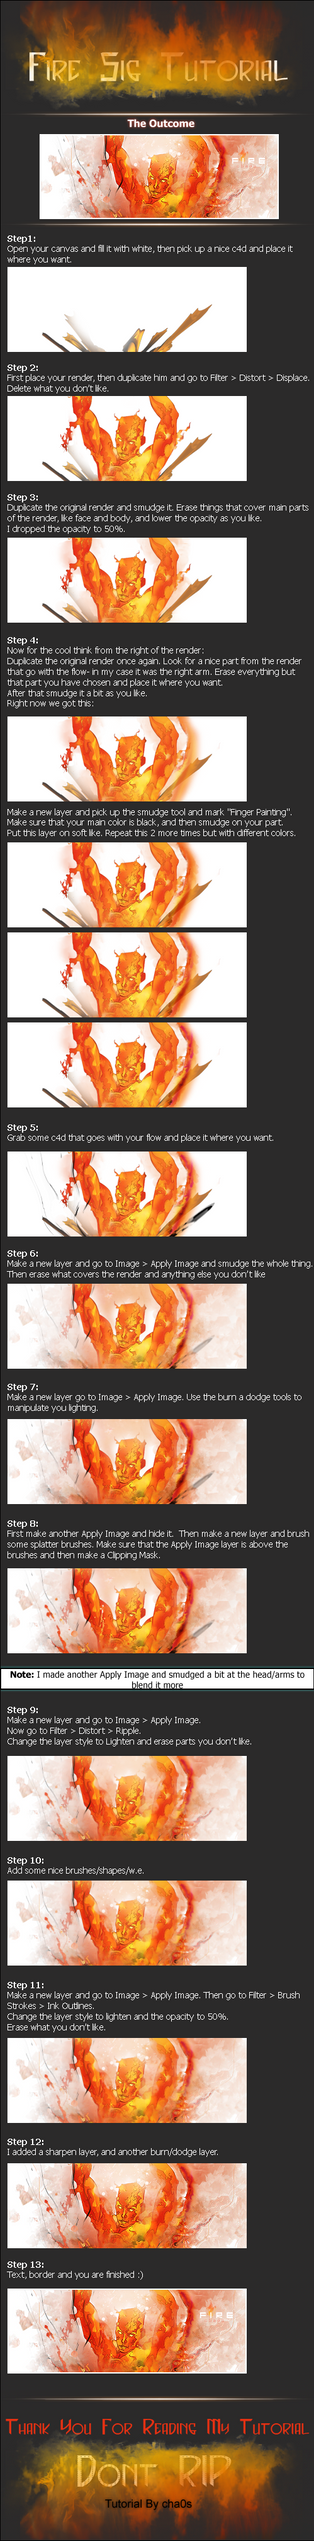 Fire Sig Tutorial by Chaos-Tutorials